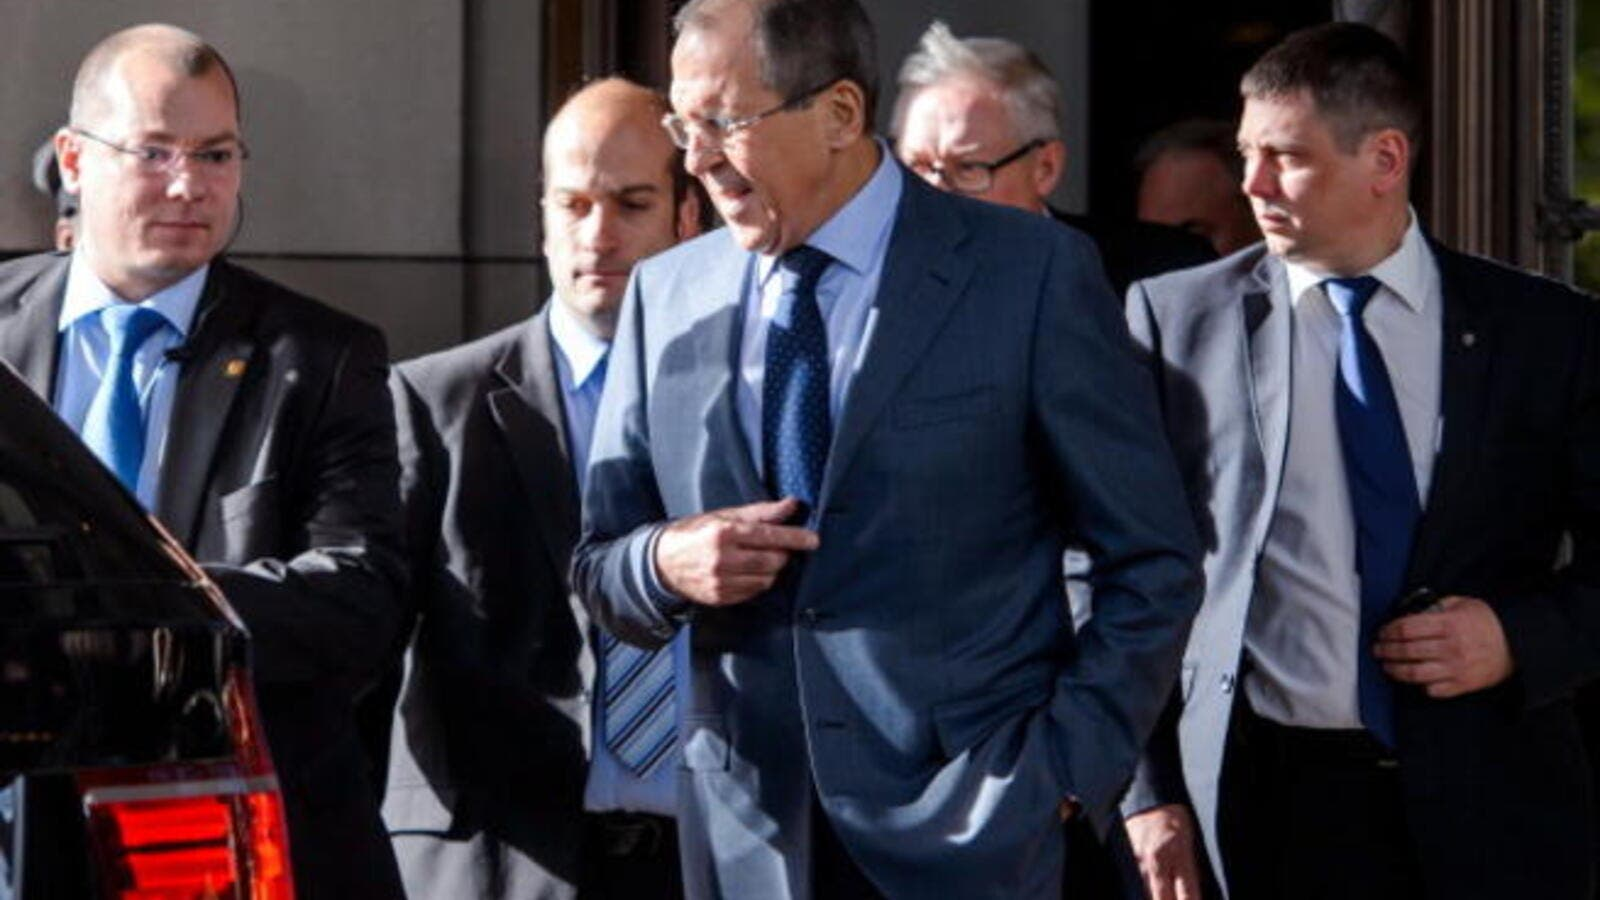 Russian Foreign Minister Sergei Lavrov leaves the Intercontinental Hotel on the third day of talks on Iran's nuclear program, on November 9, 2013 in Geneva.[AFP]